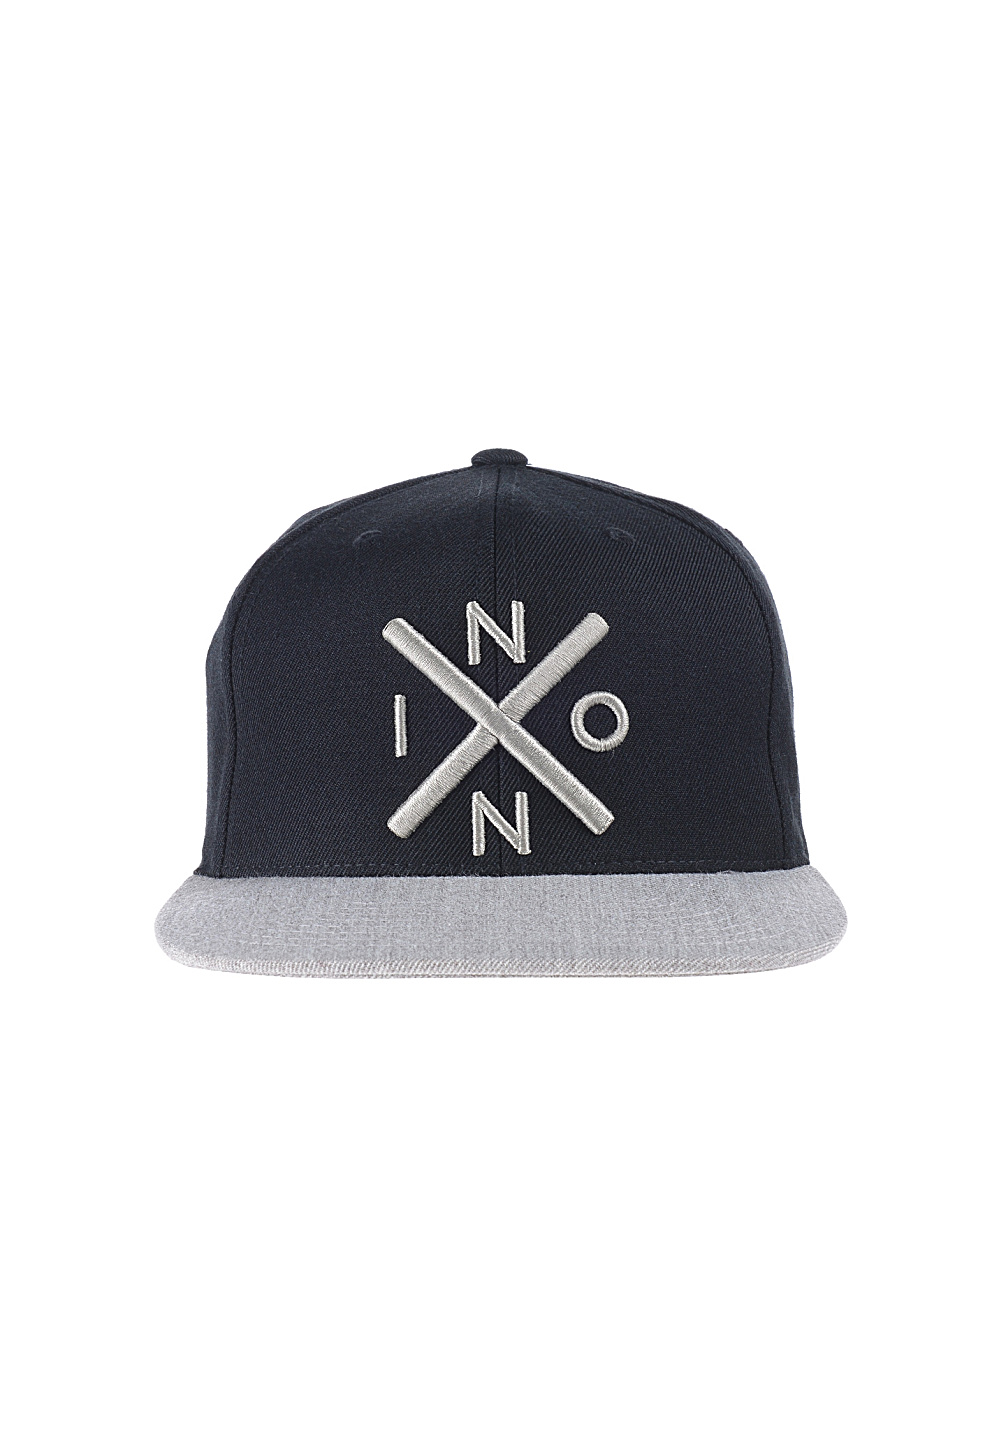 ... NIXON Exchange - Snapback Cap - Black. Back to Overview. 1  2  3  4.  Previous. Next e95ef2c82994